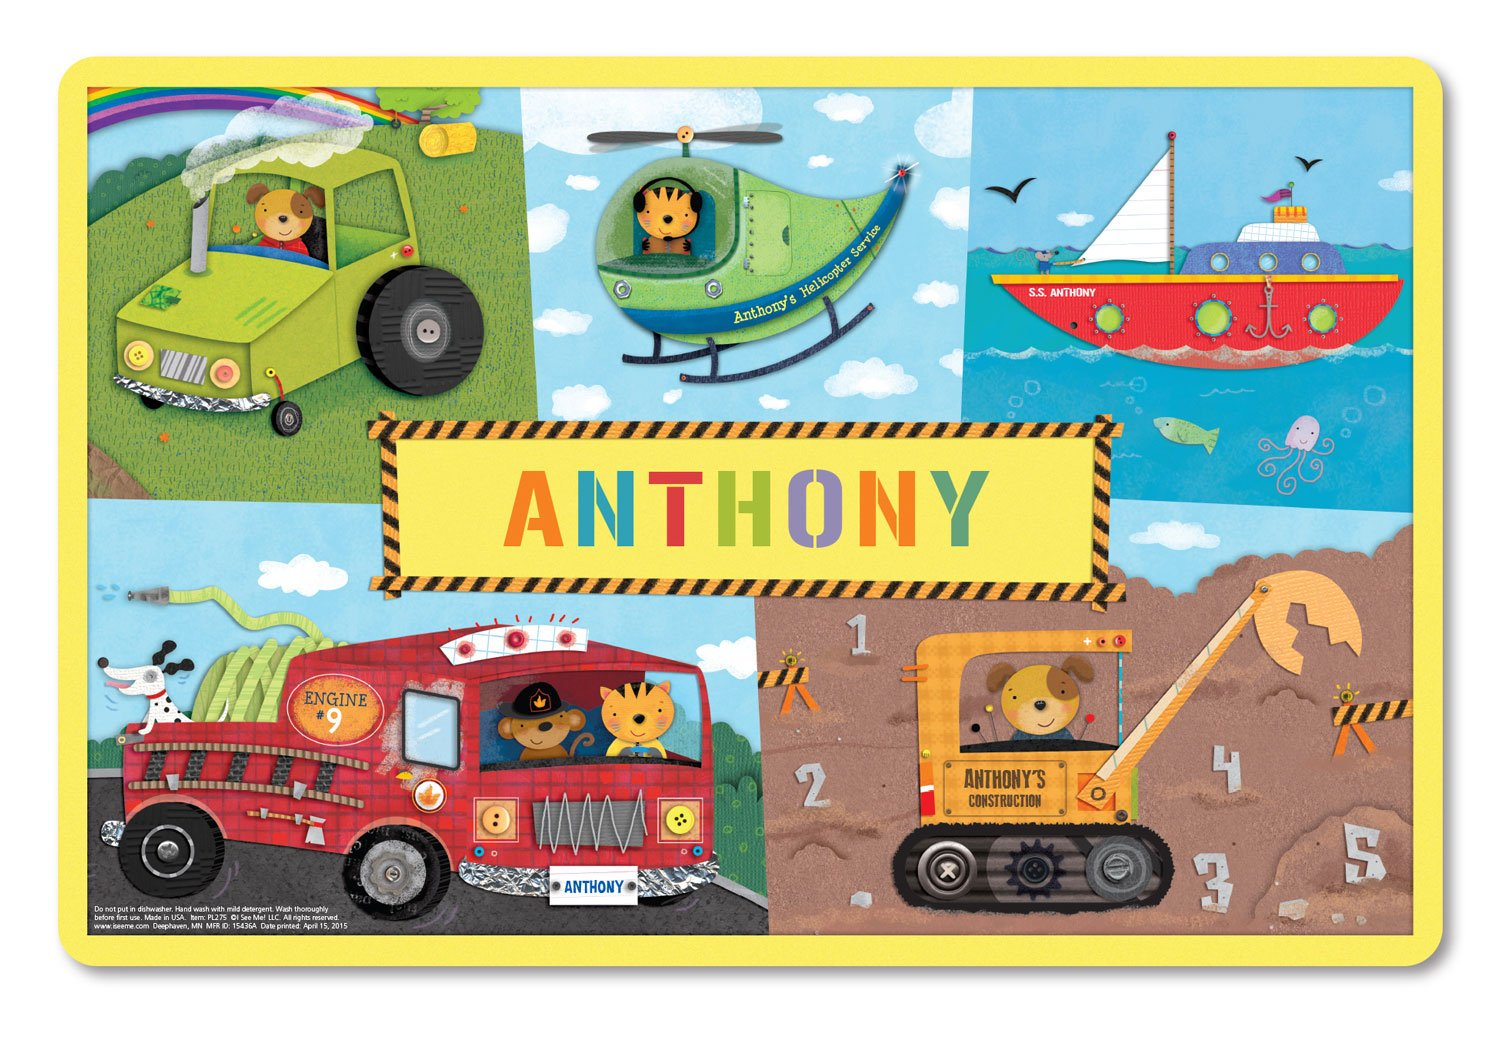 Kids Placemat Personalized with Child's Name, Custom Dining Placemat, Unique Gift for Boys and Girls, Trucks, Tractors, Construction, Firetruck, Digger